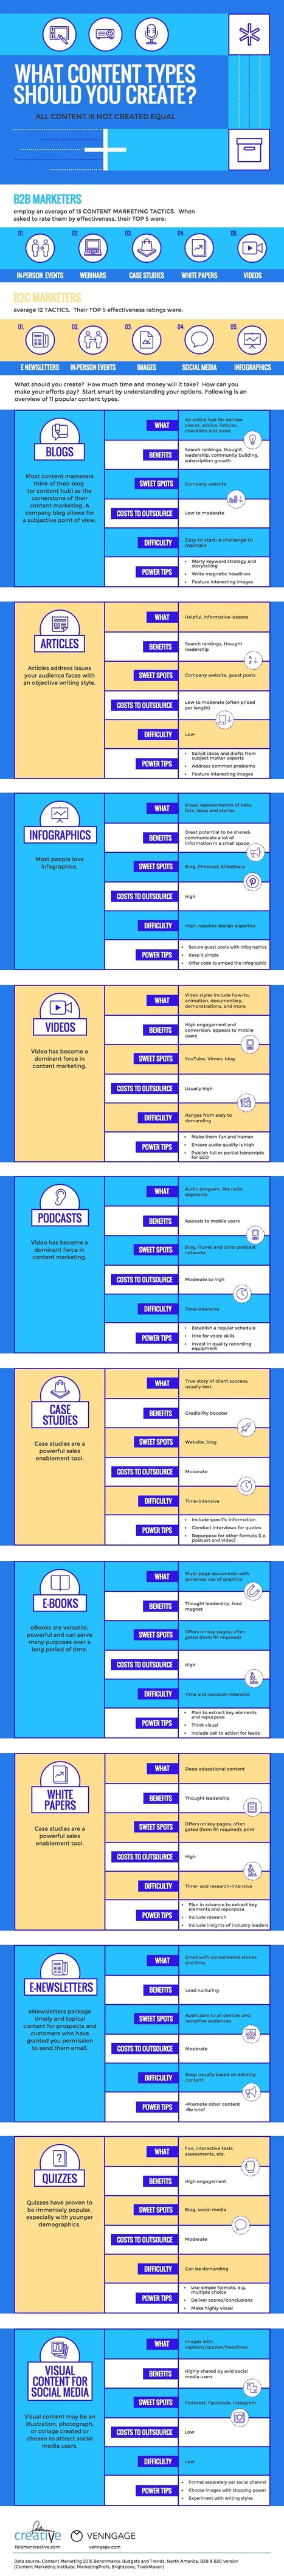 What Content Types Should You Create? #Infographic | Social Media, SEO, Photography | Scoop.it